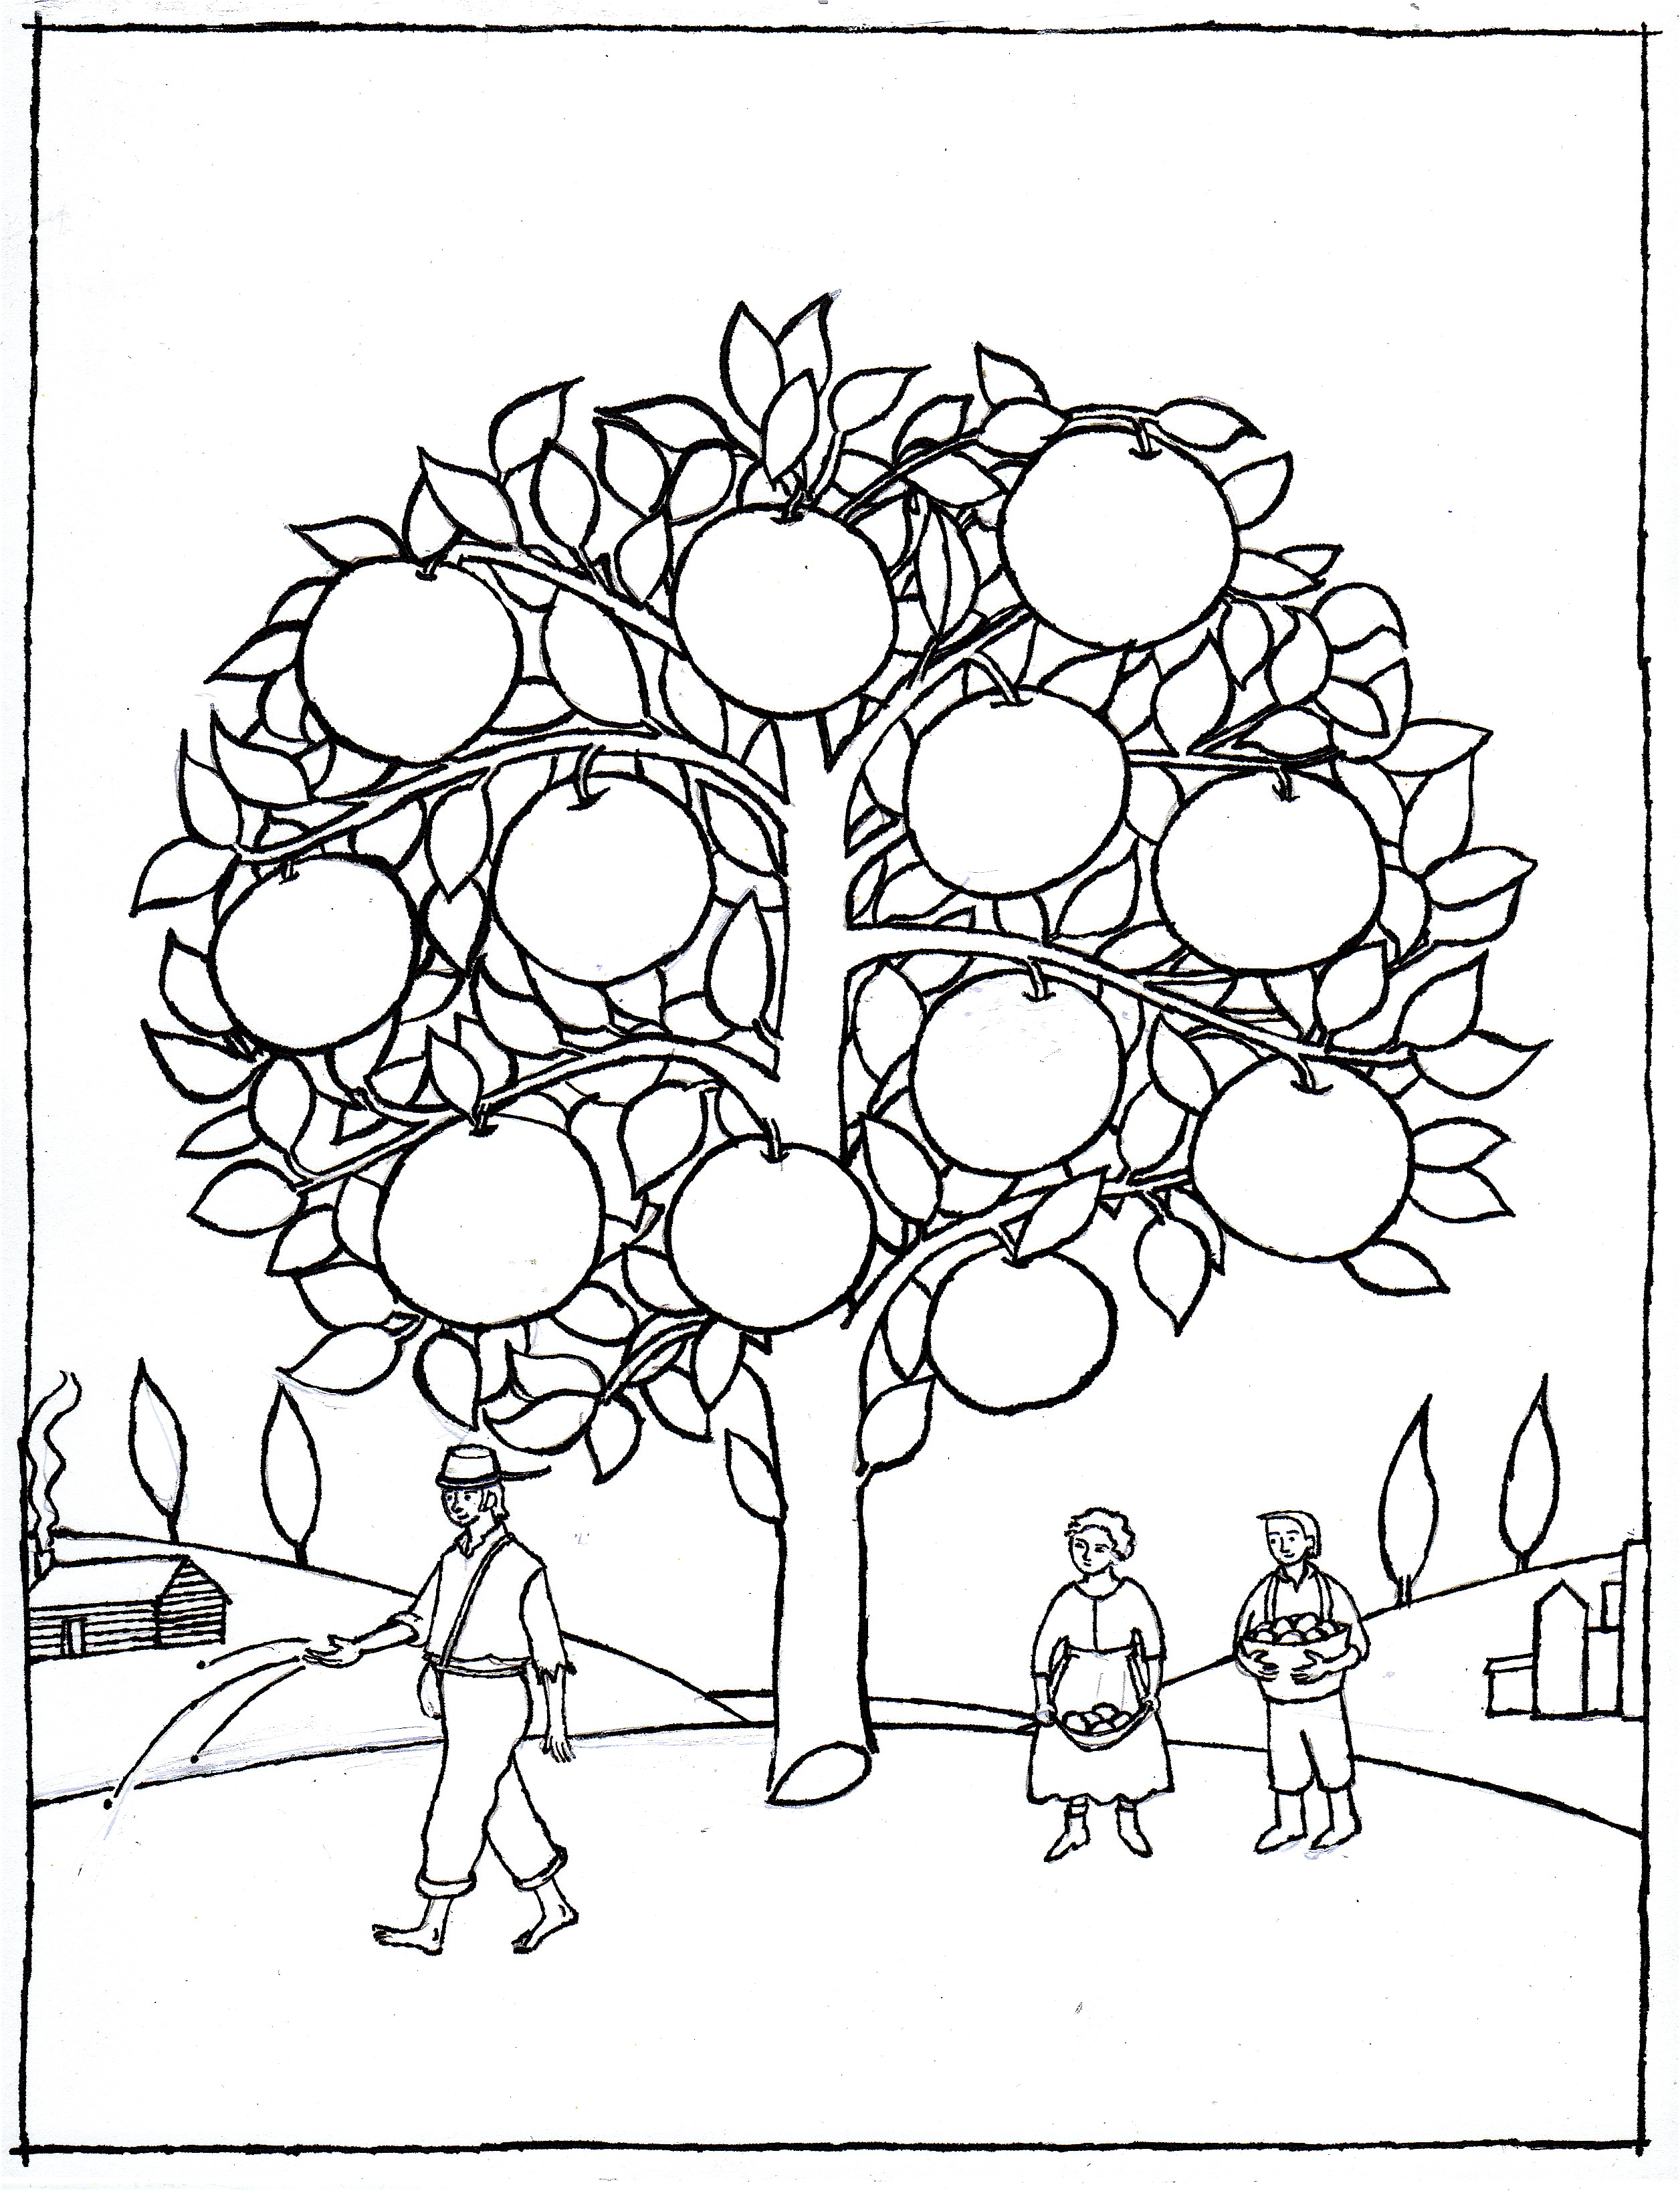 johnny appleseed coloring pages best coloring pages for kids. Black Bedroom Furniture Sets. Home Design Ideas